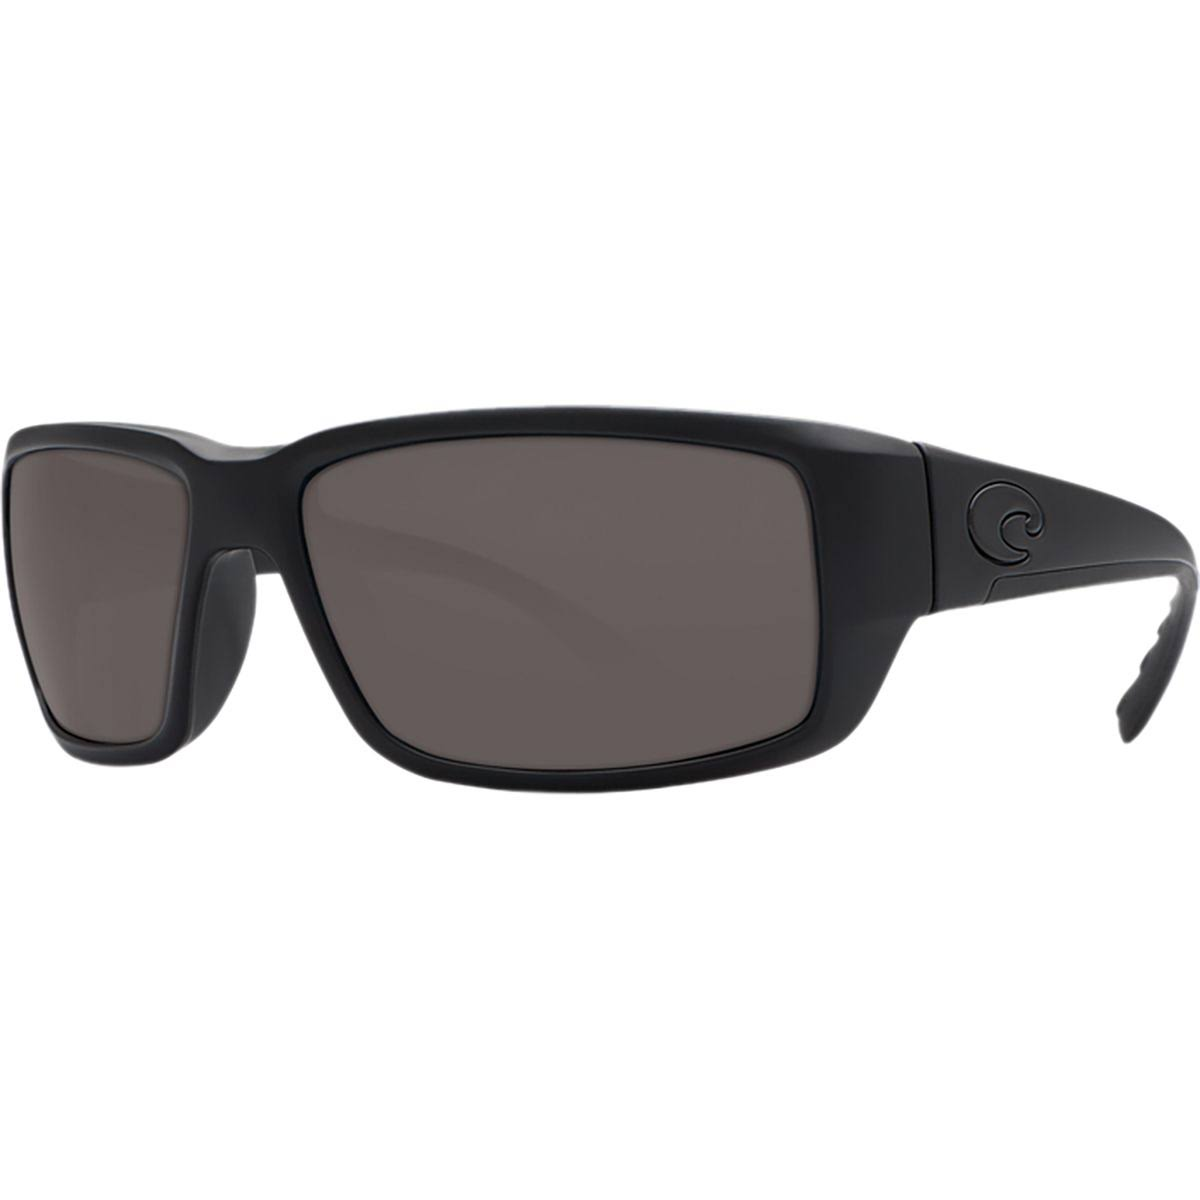 Costa Del Mar Fantail Polarized Sunglasses - Blackout Frame